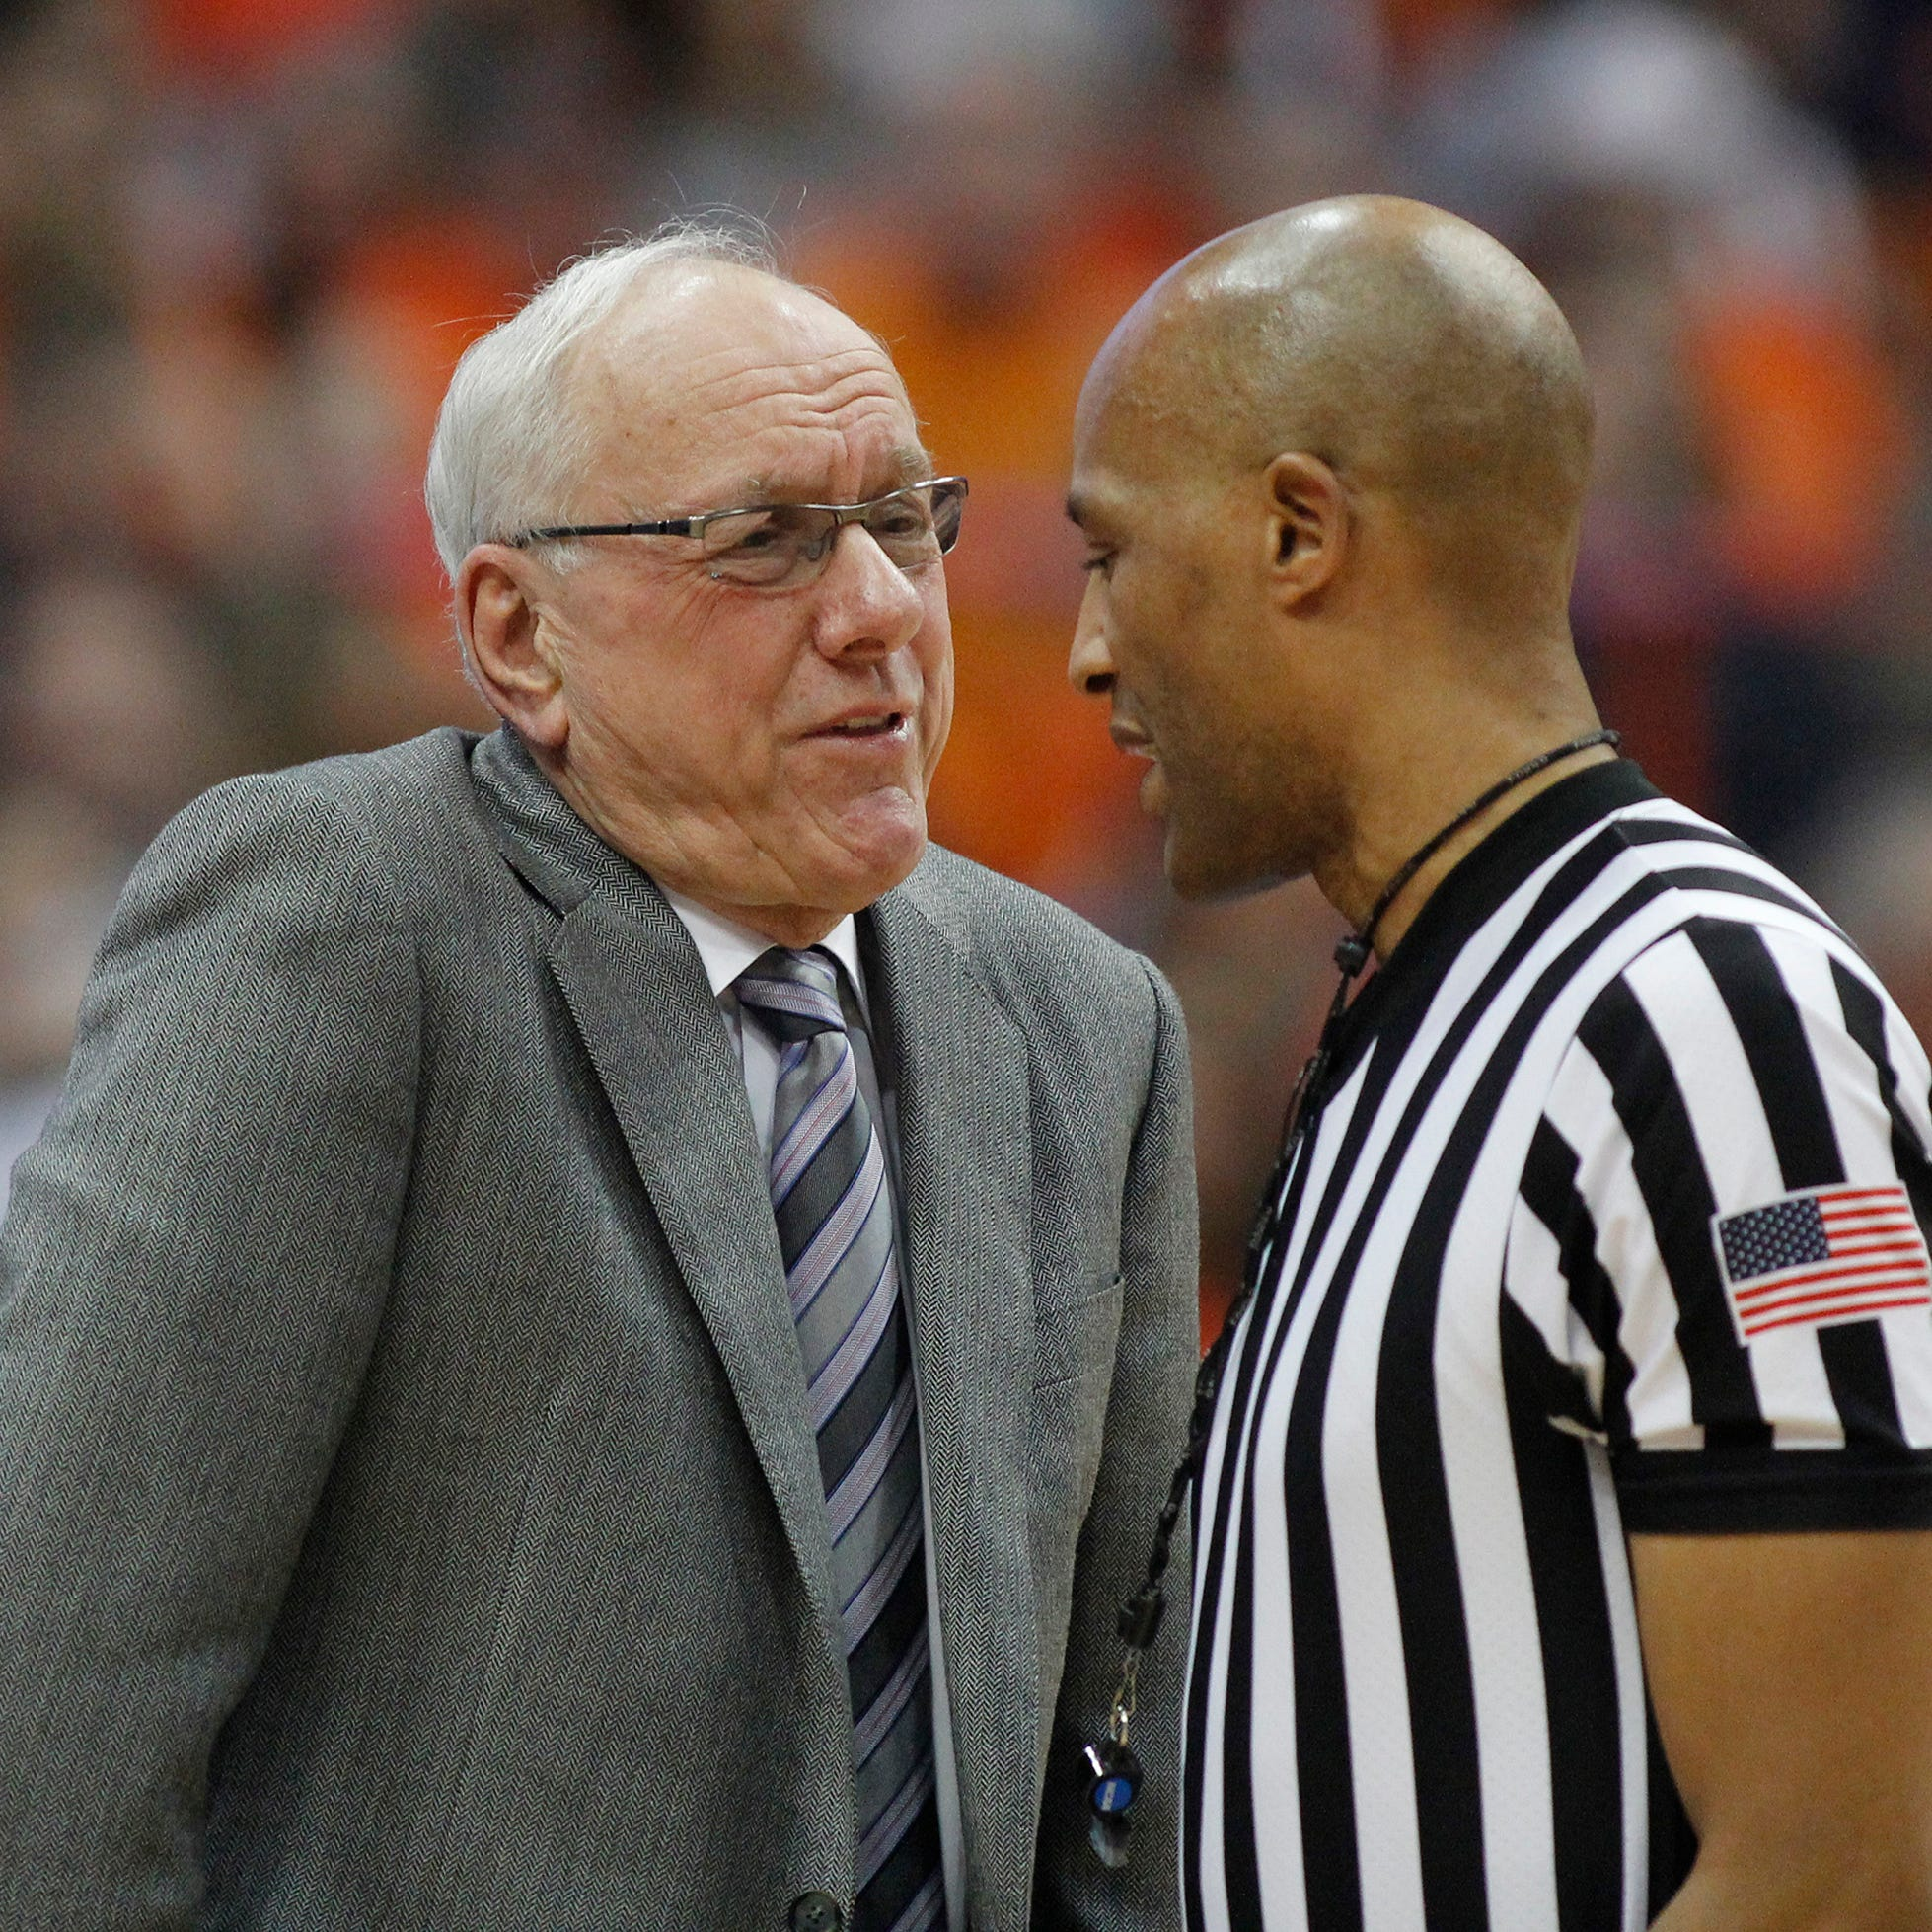 Jim Boeheim will coach Syracuse basketball team against Duke on Saturday